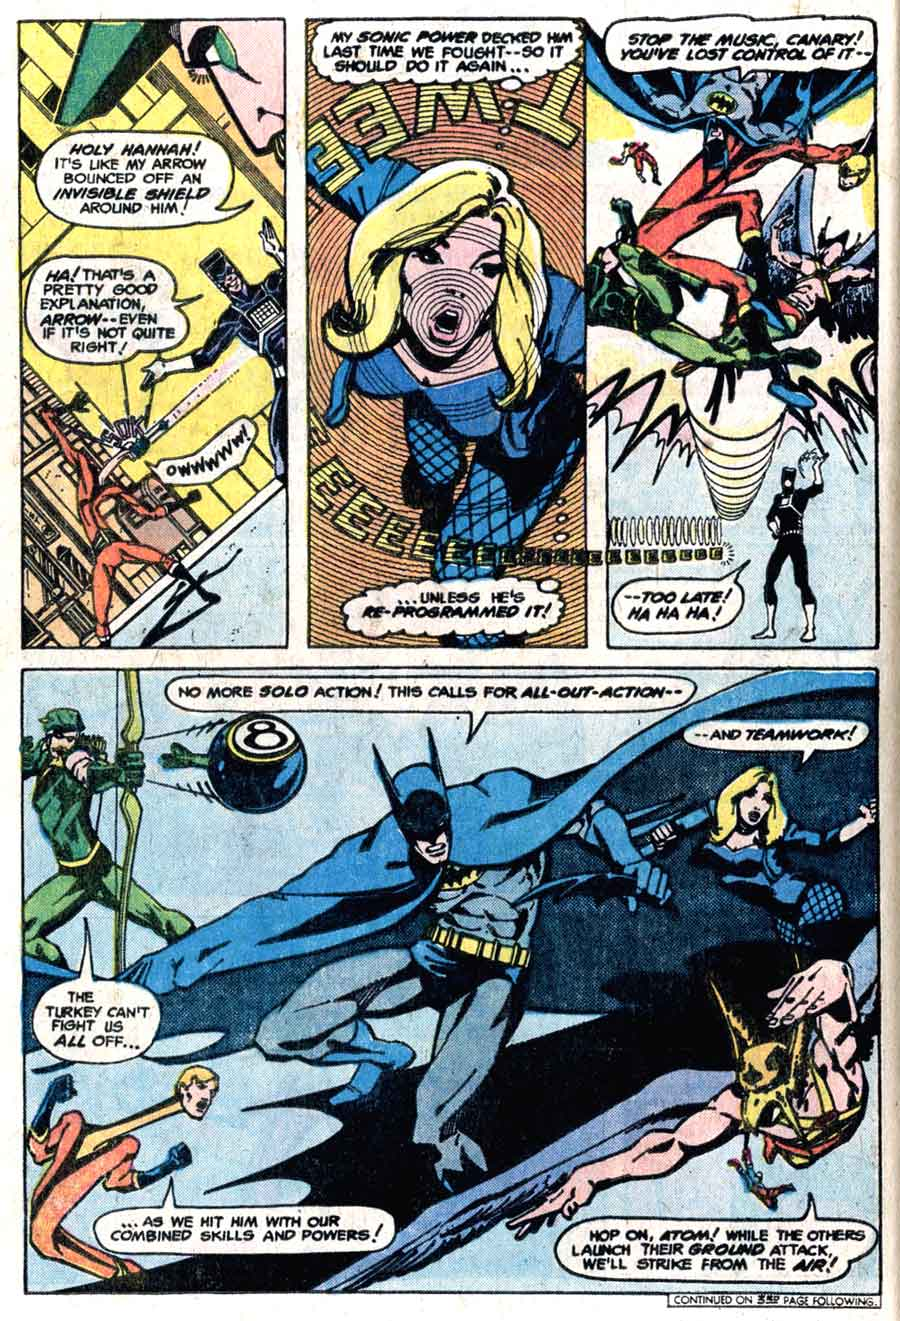 Detective Comics v1 #468 dc comic book page art by Marshall Rogers